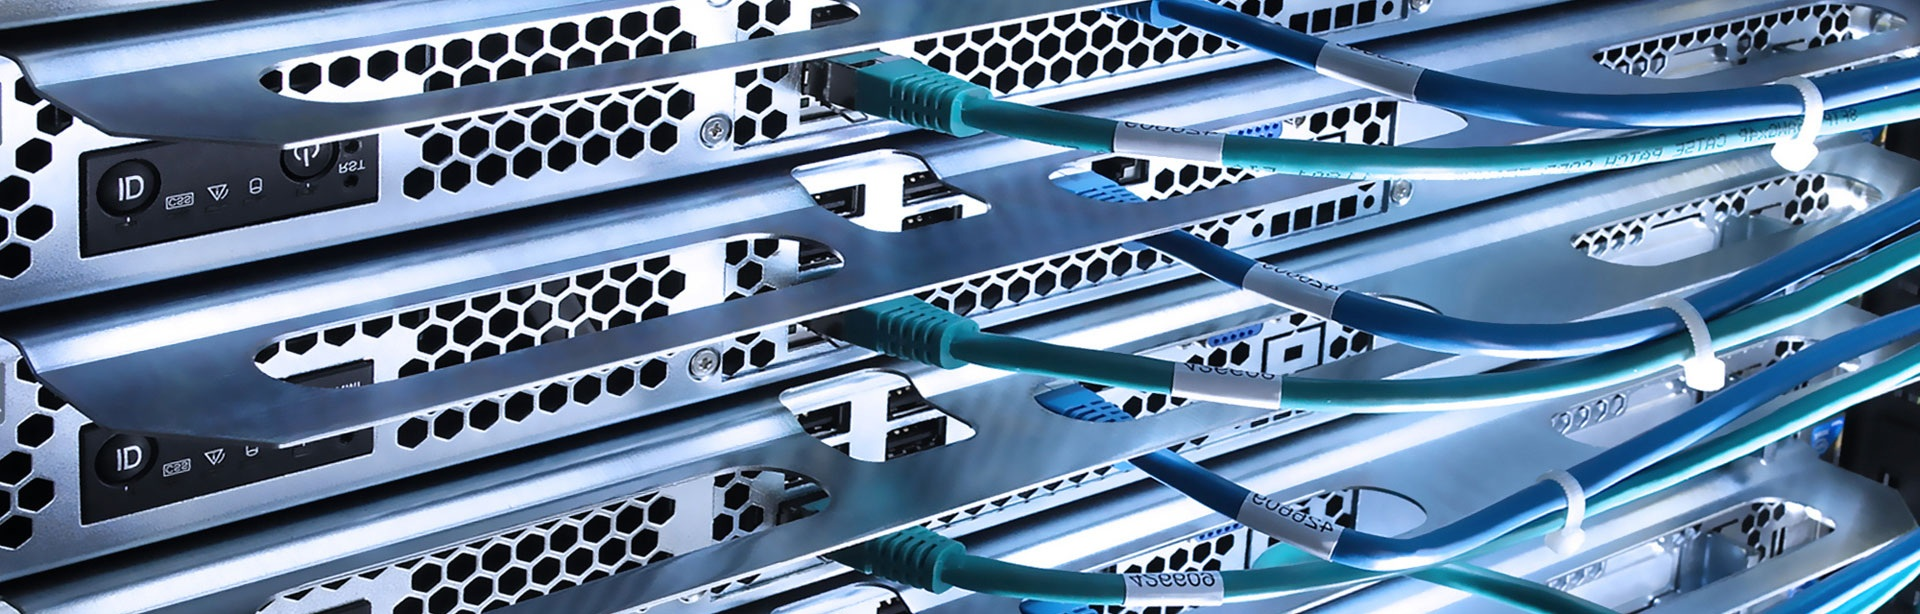 West Monroe Louisiana Trusted Voice & Data Network Cabling Contractor